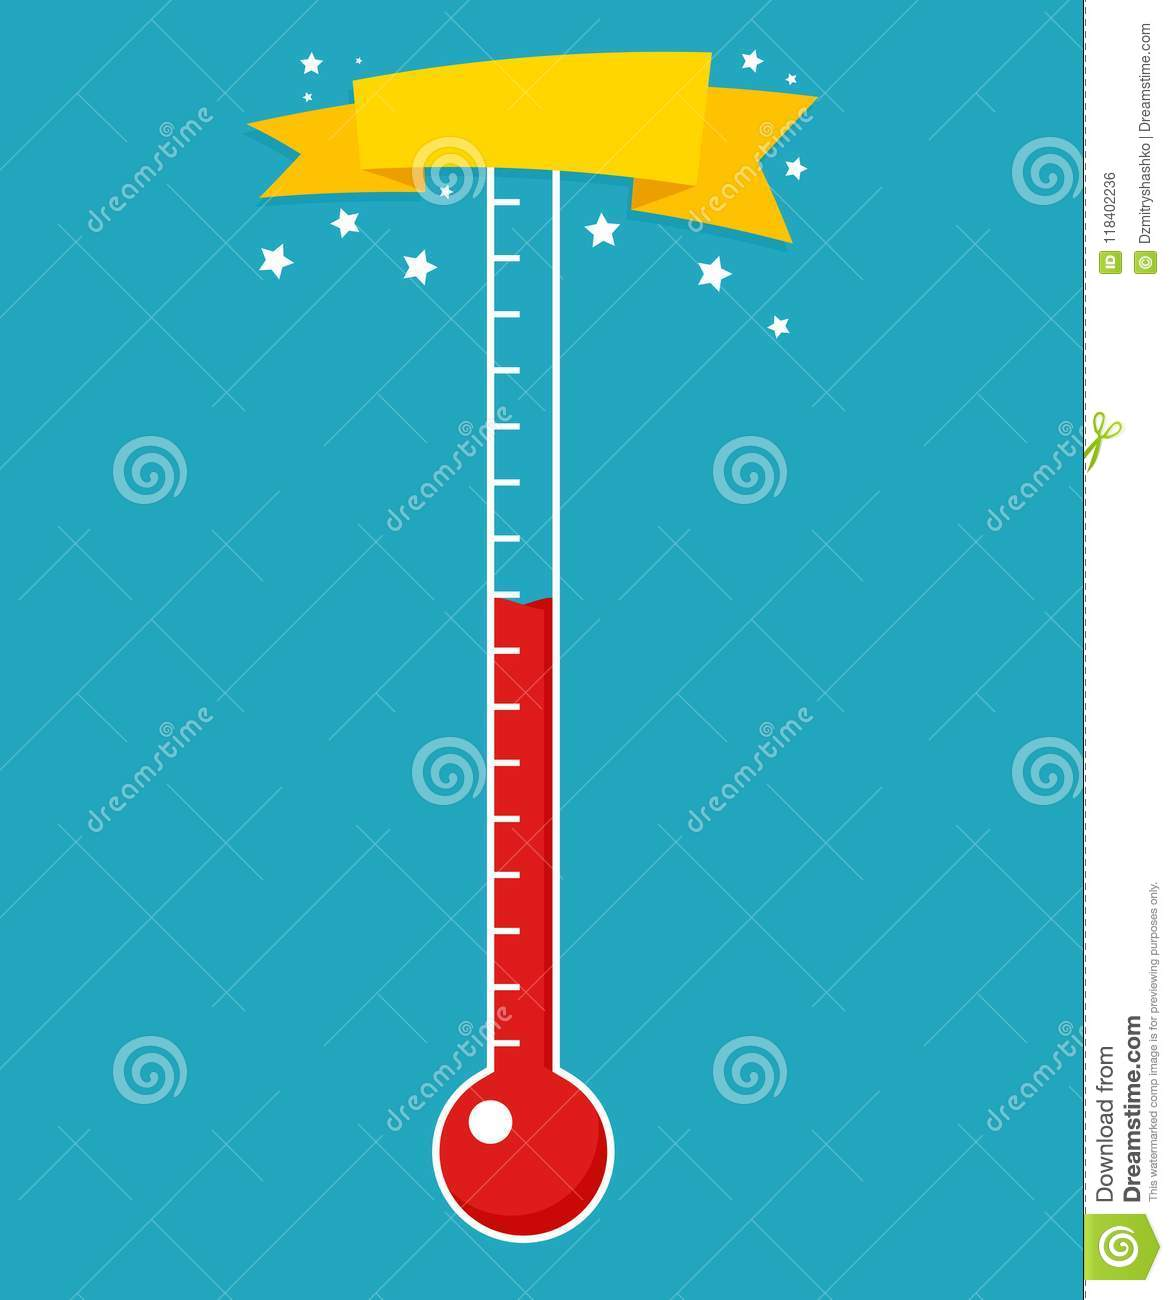 Fundraising Thermometer Template Stock Vector - Illustration of ...